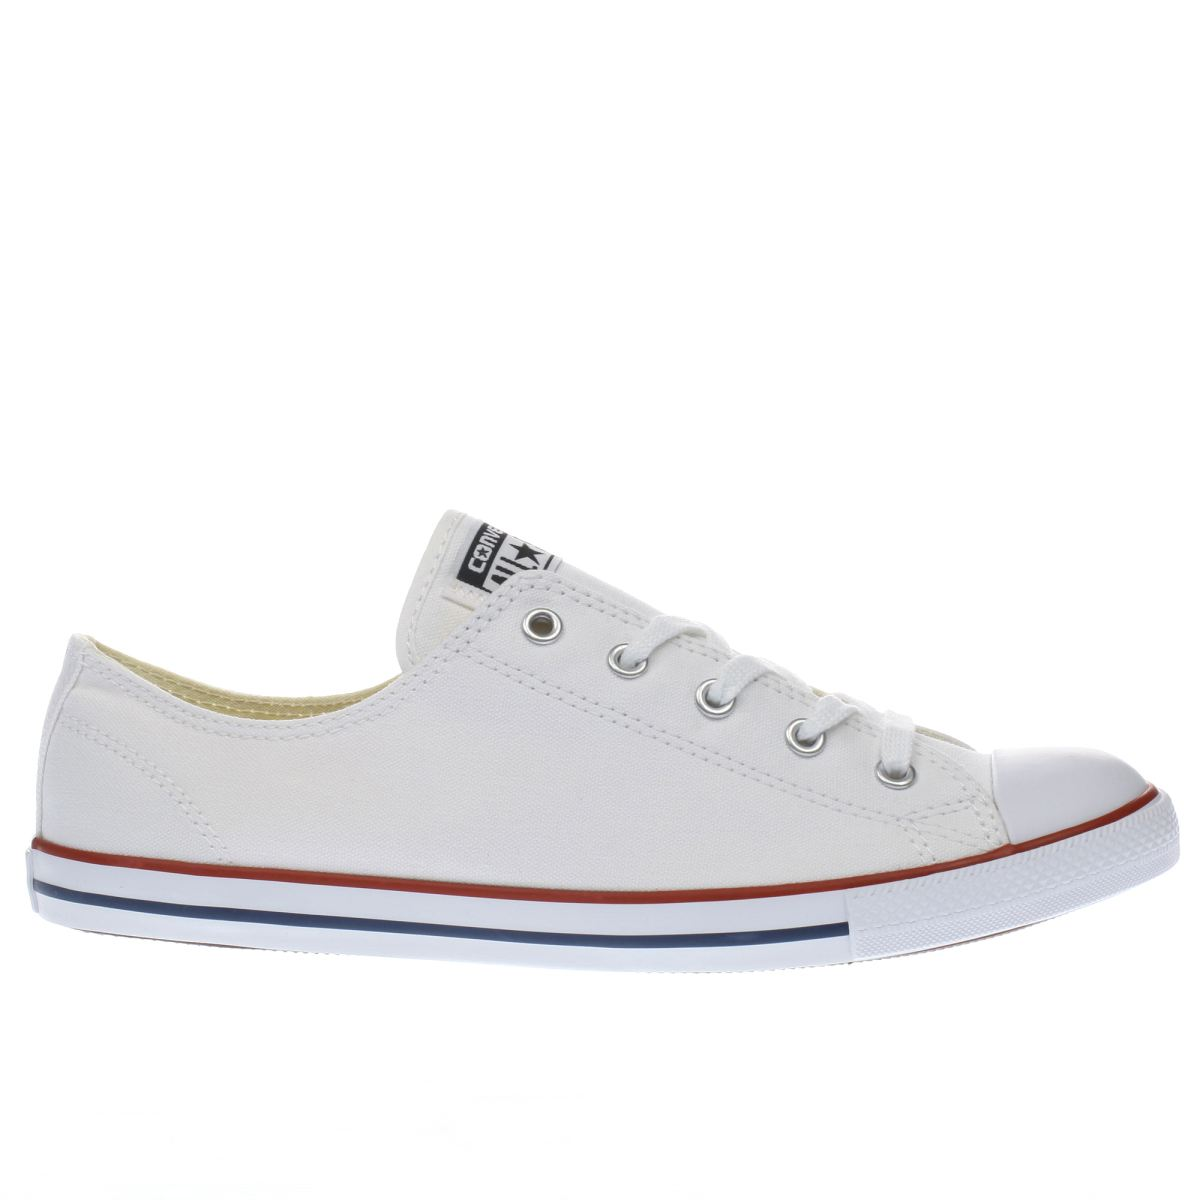 converse trainers converse white all star dainty canvas womens trainers VUYECBZ